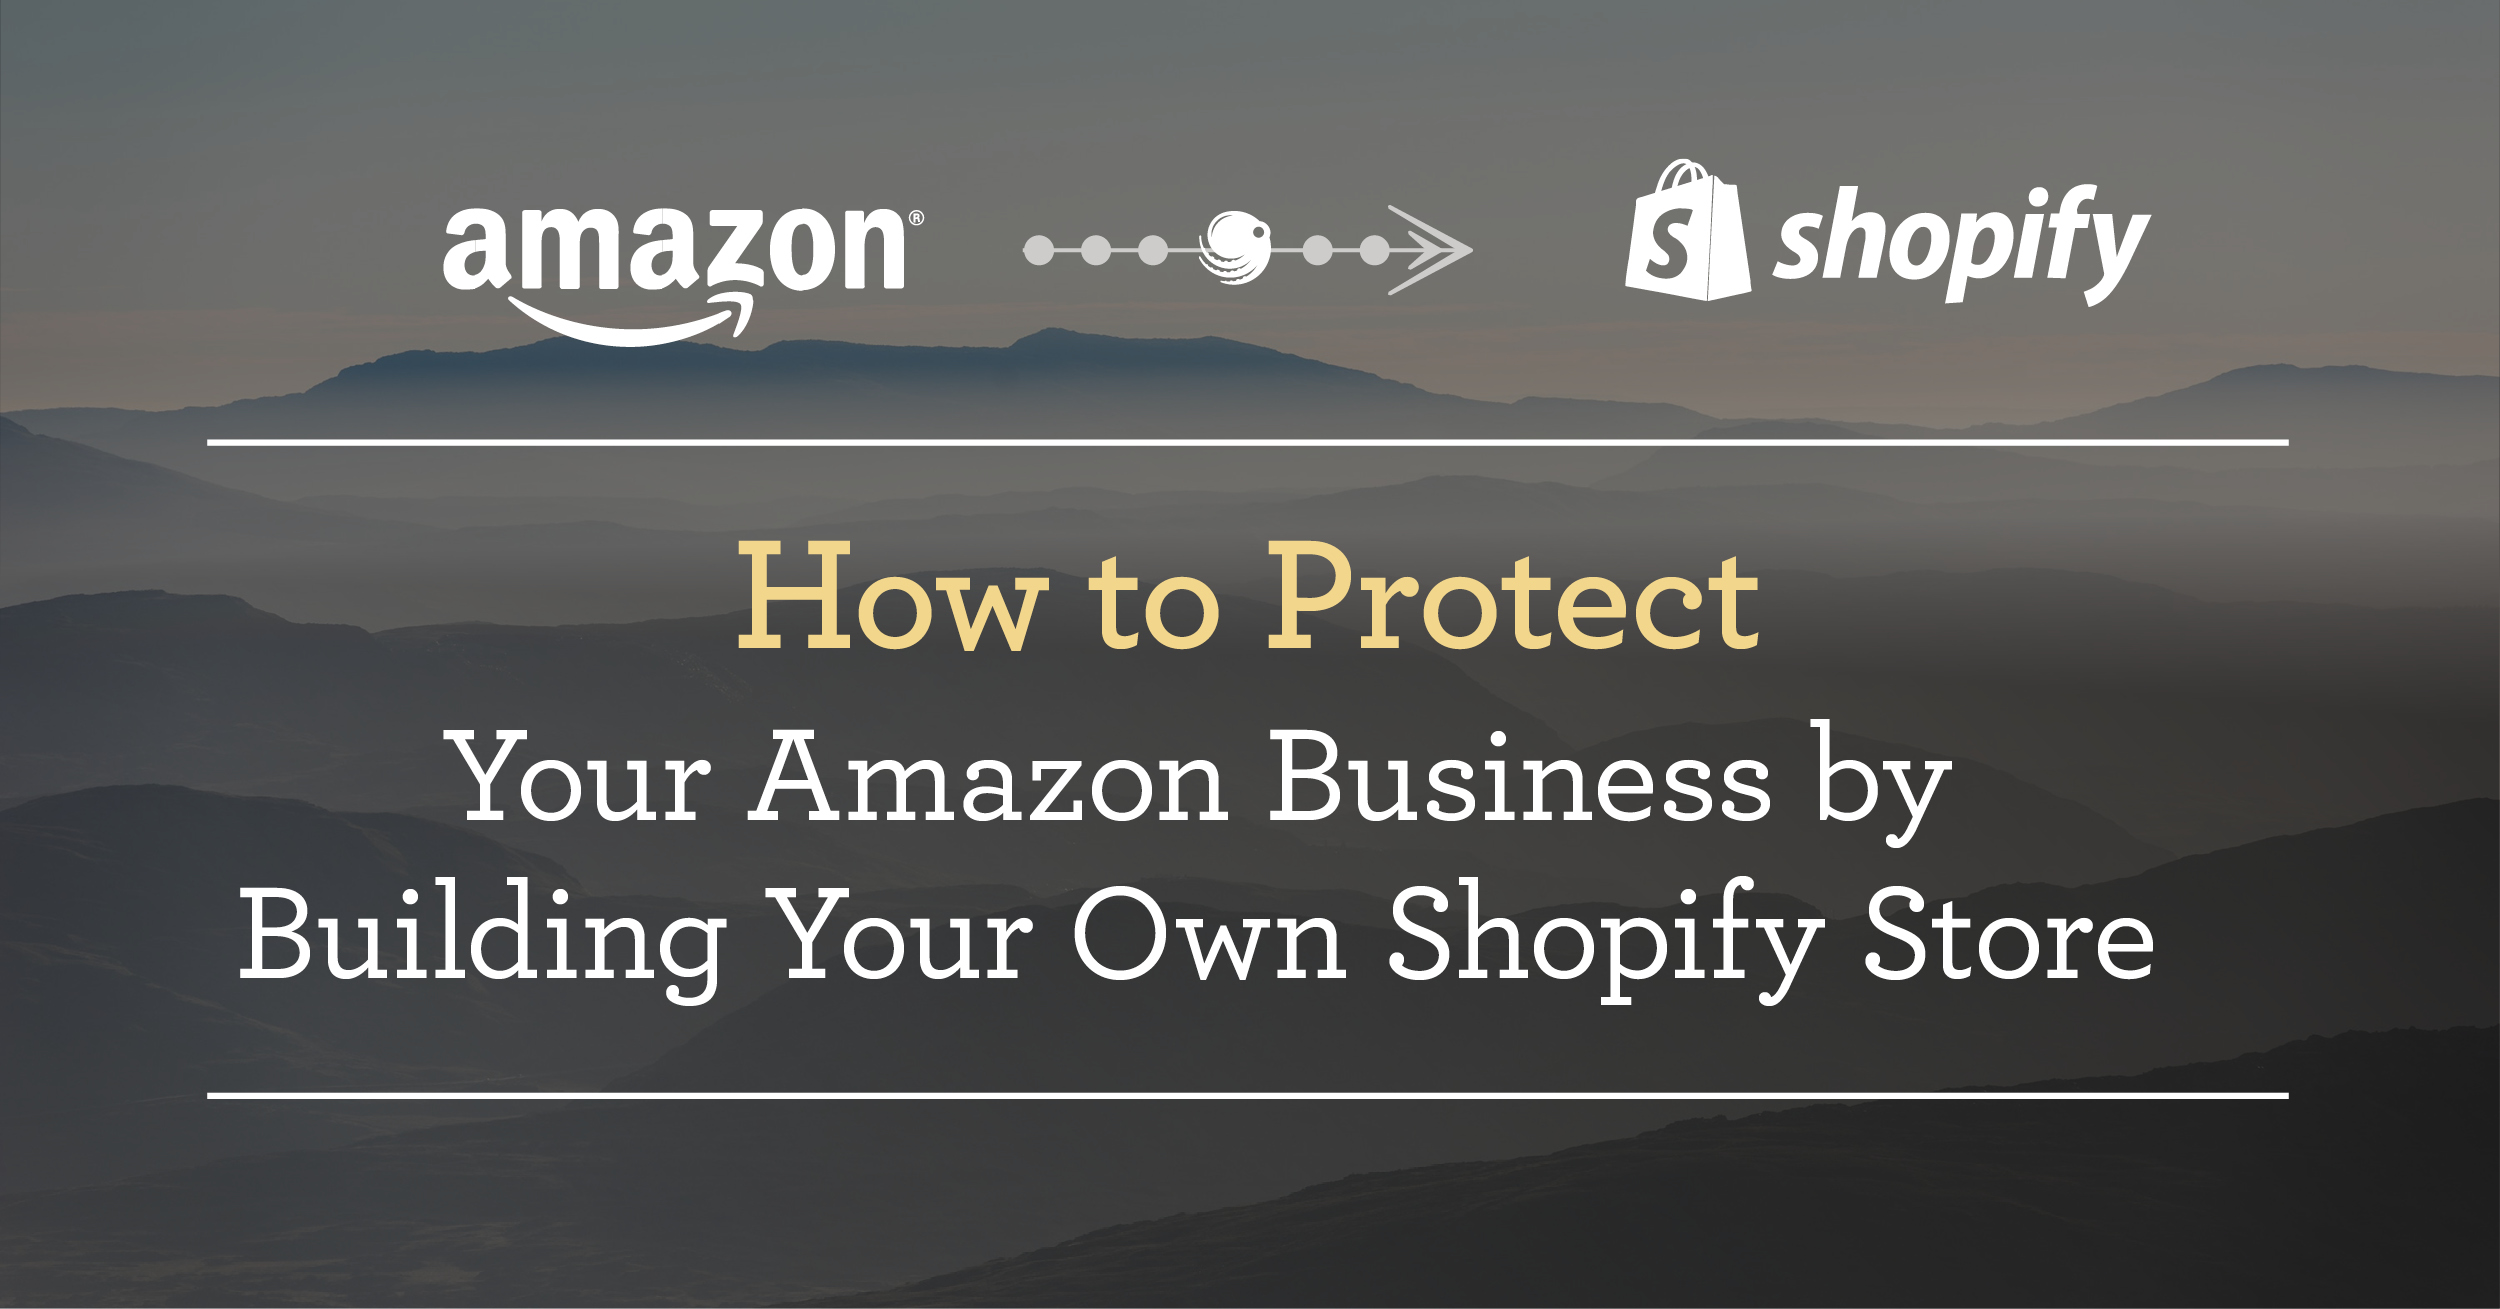 Protect Amazon Business